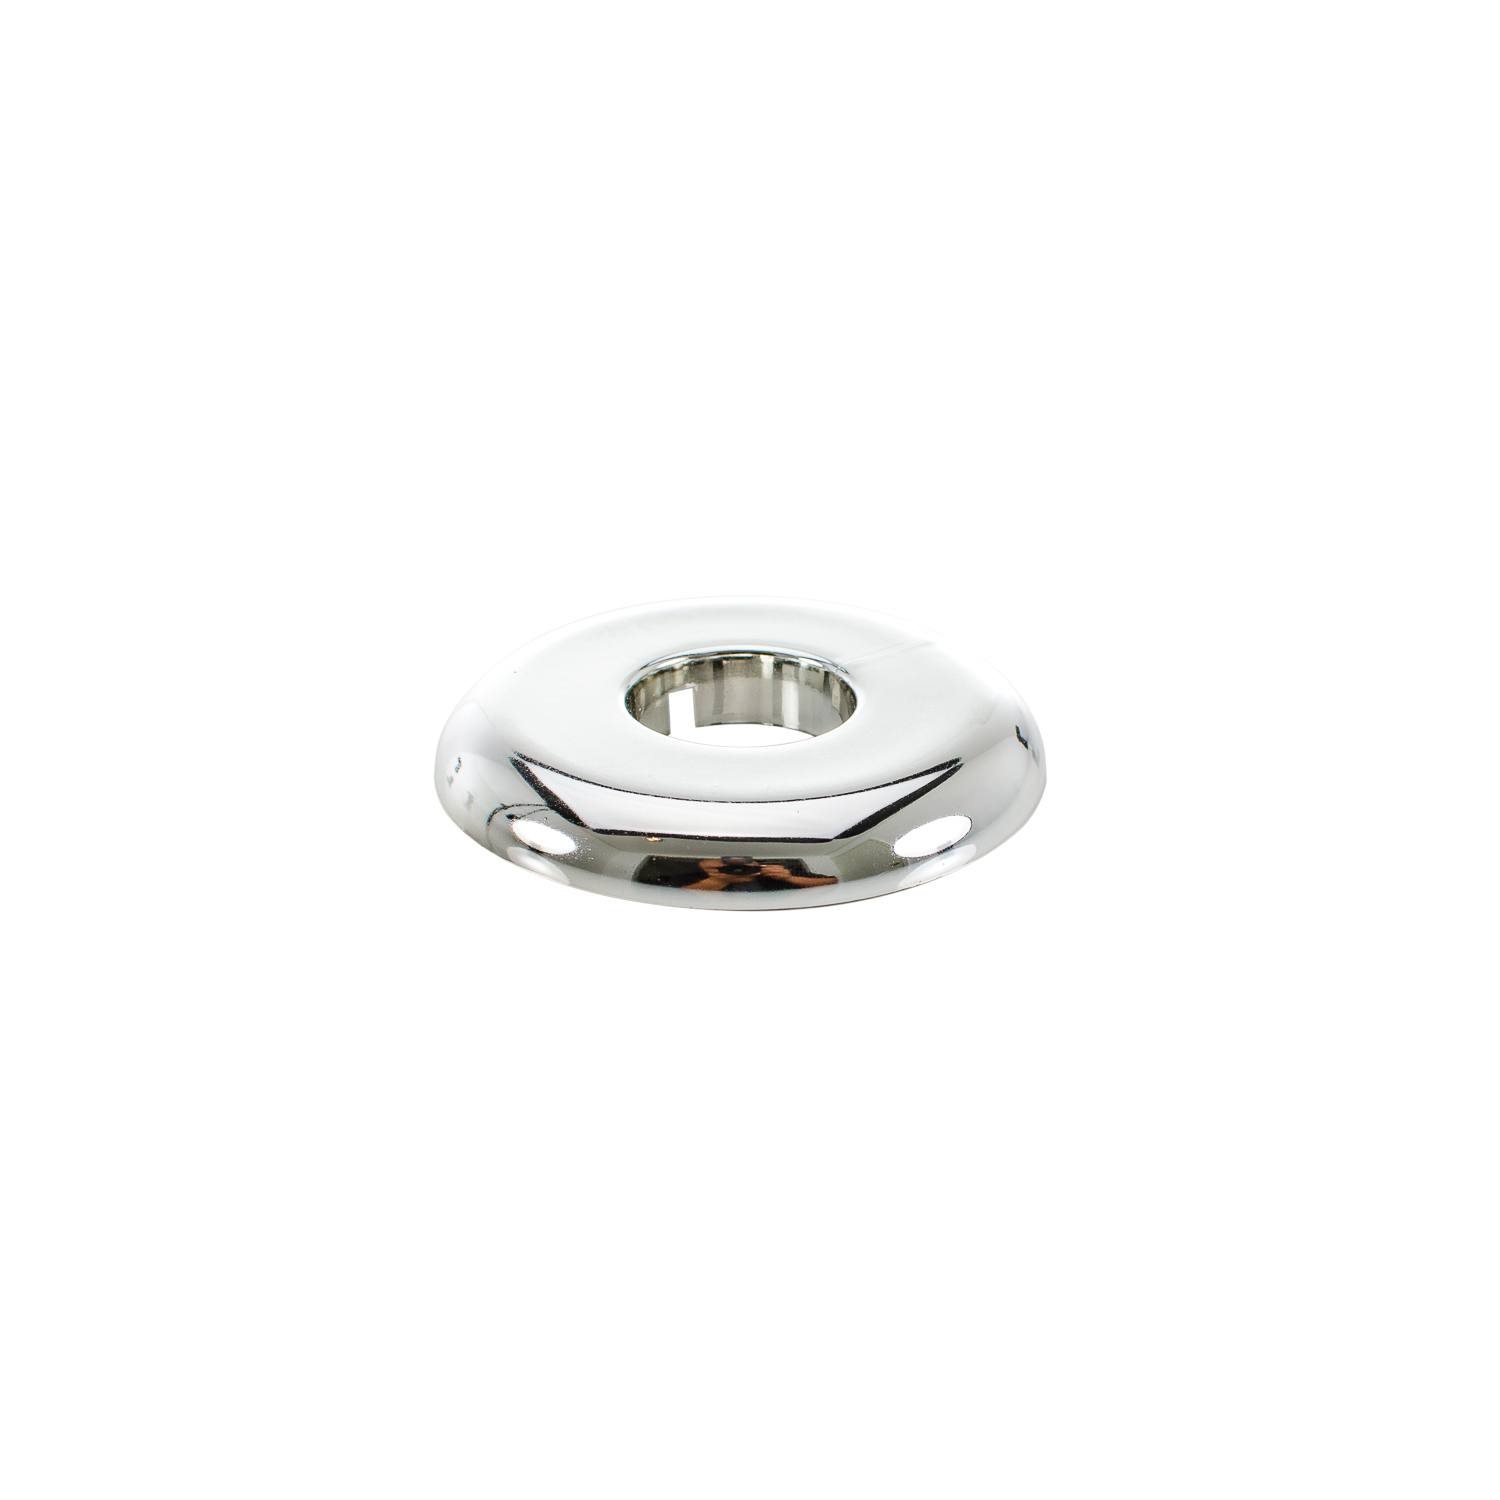 PASCO 2857 Split-One Floor and Ceiling Plate, 3/4 in IPS Thread, Plastic, Polished Chrome